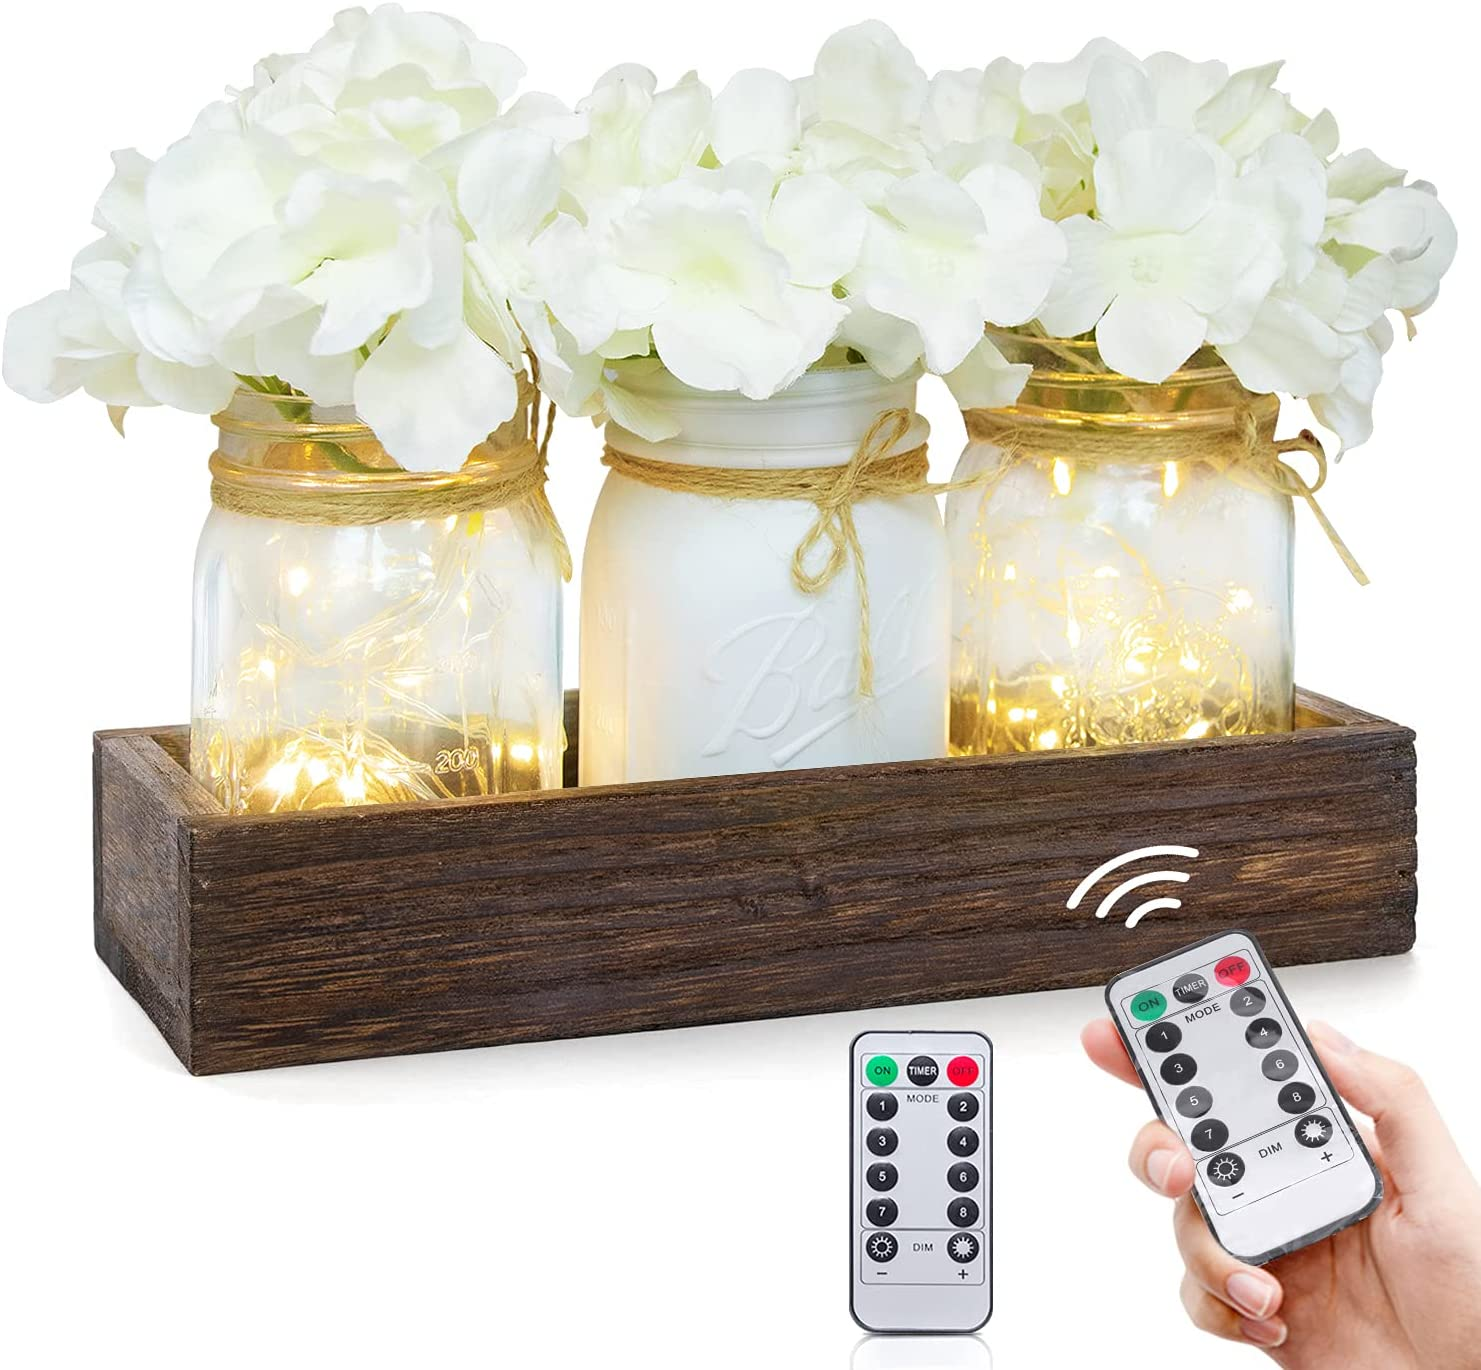 Lighted Floral Rustic Mason Jar Centerpiece Decorative Wood Tray with Remote Control LED Fairy Lights and 3 Painted Jars For Home, Living Room, Bedroom, Kitchen, Herb Plants Coffee Table Decoration